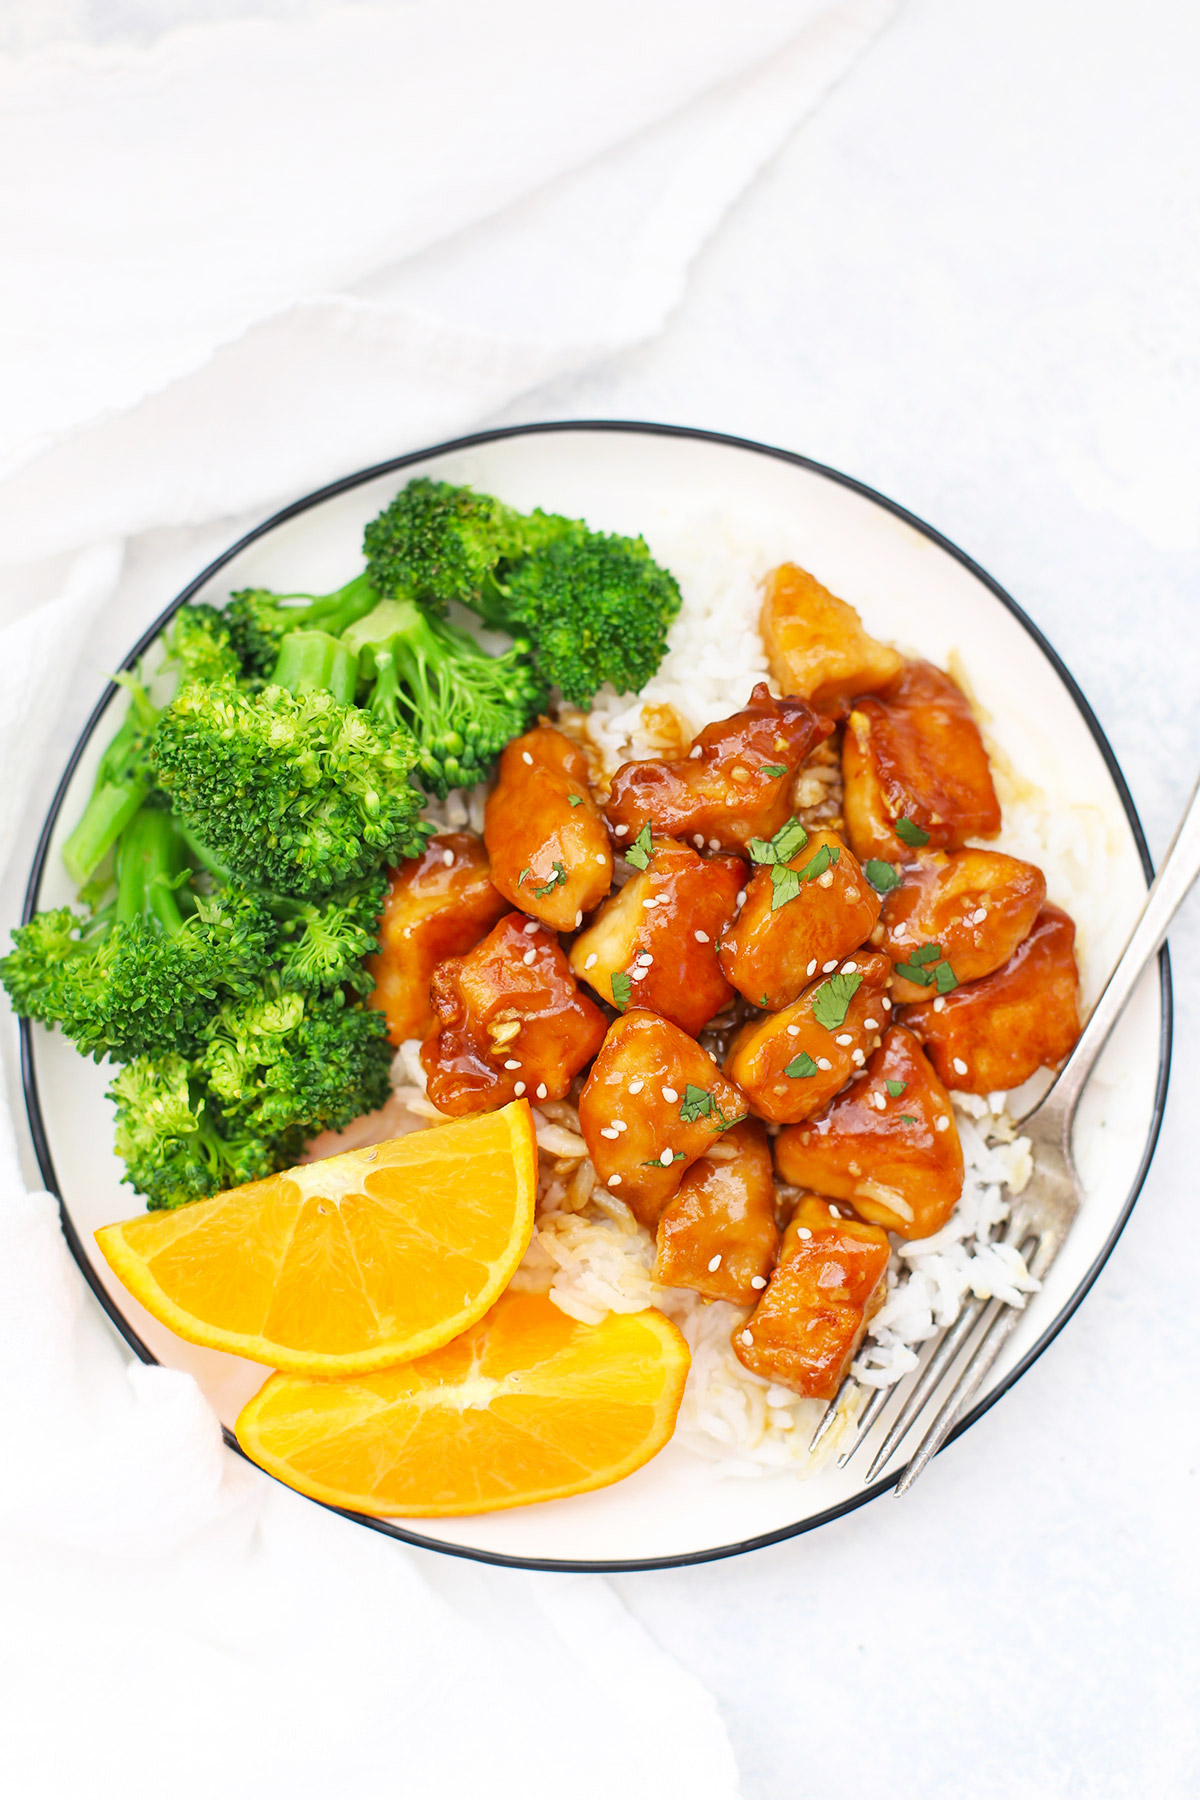 Overhead view of a plate with healthy orange chicken, rice, orange wedges and steamed broccoli on a white background